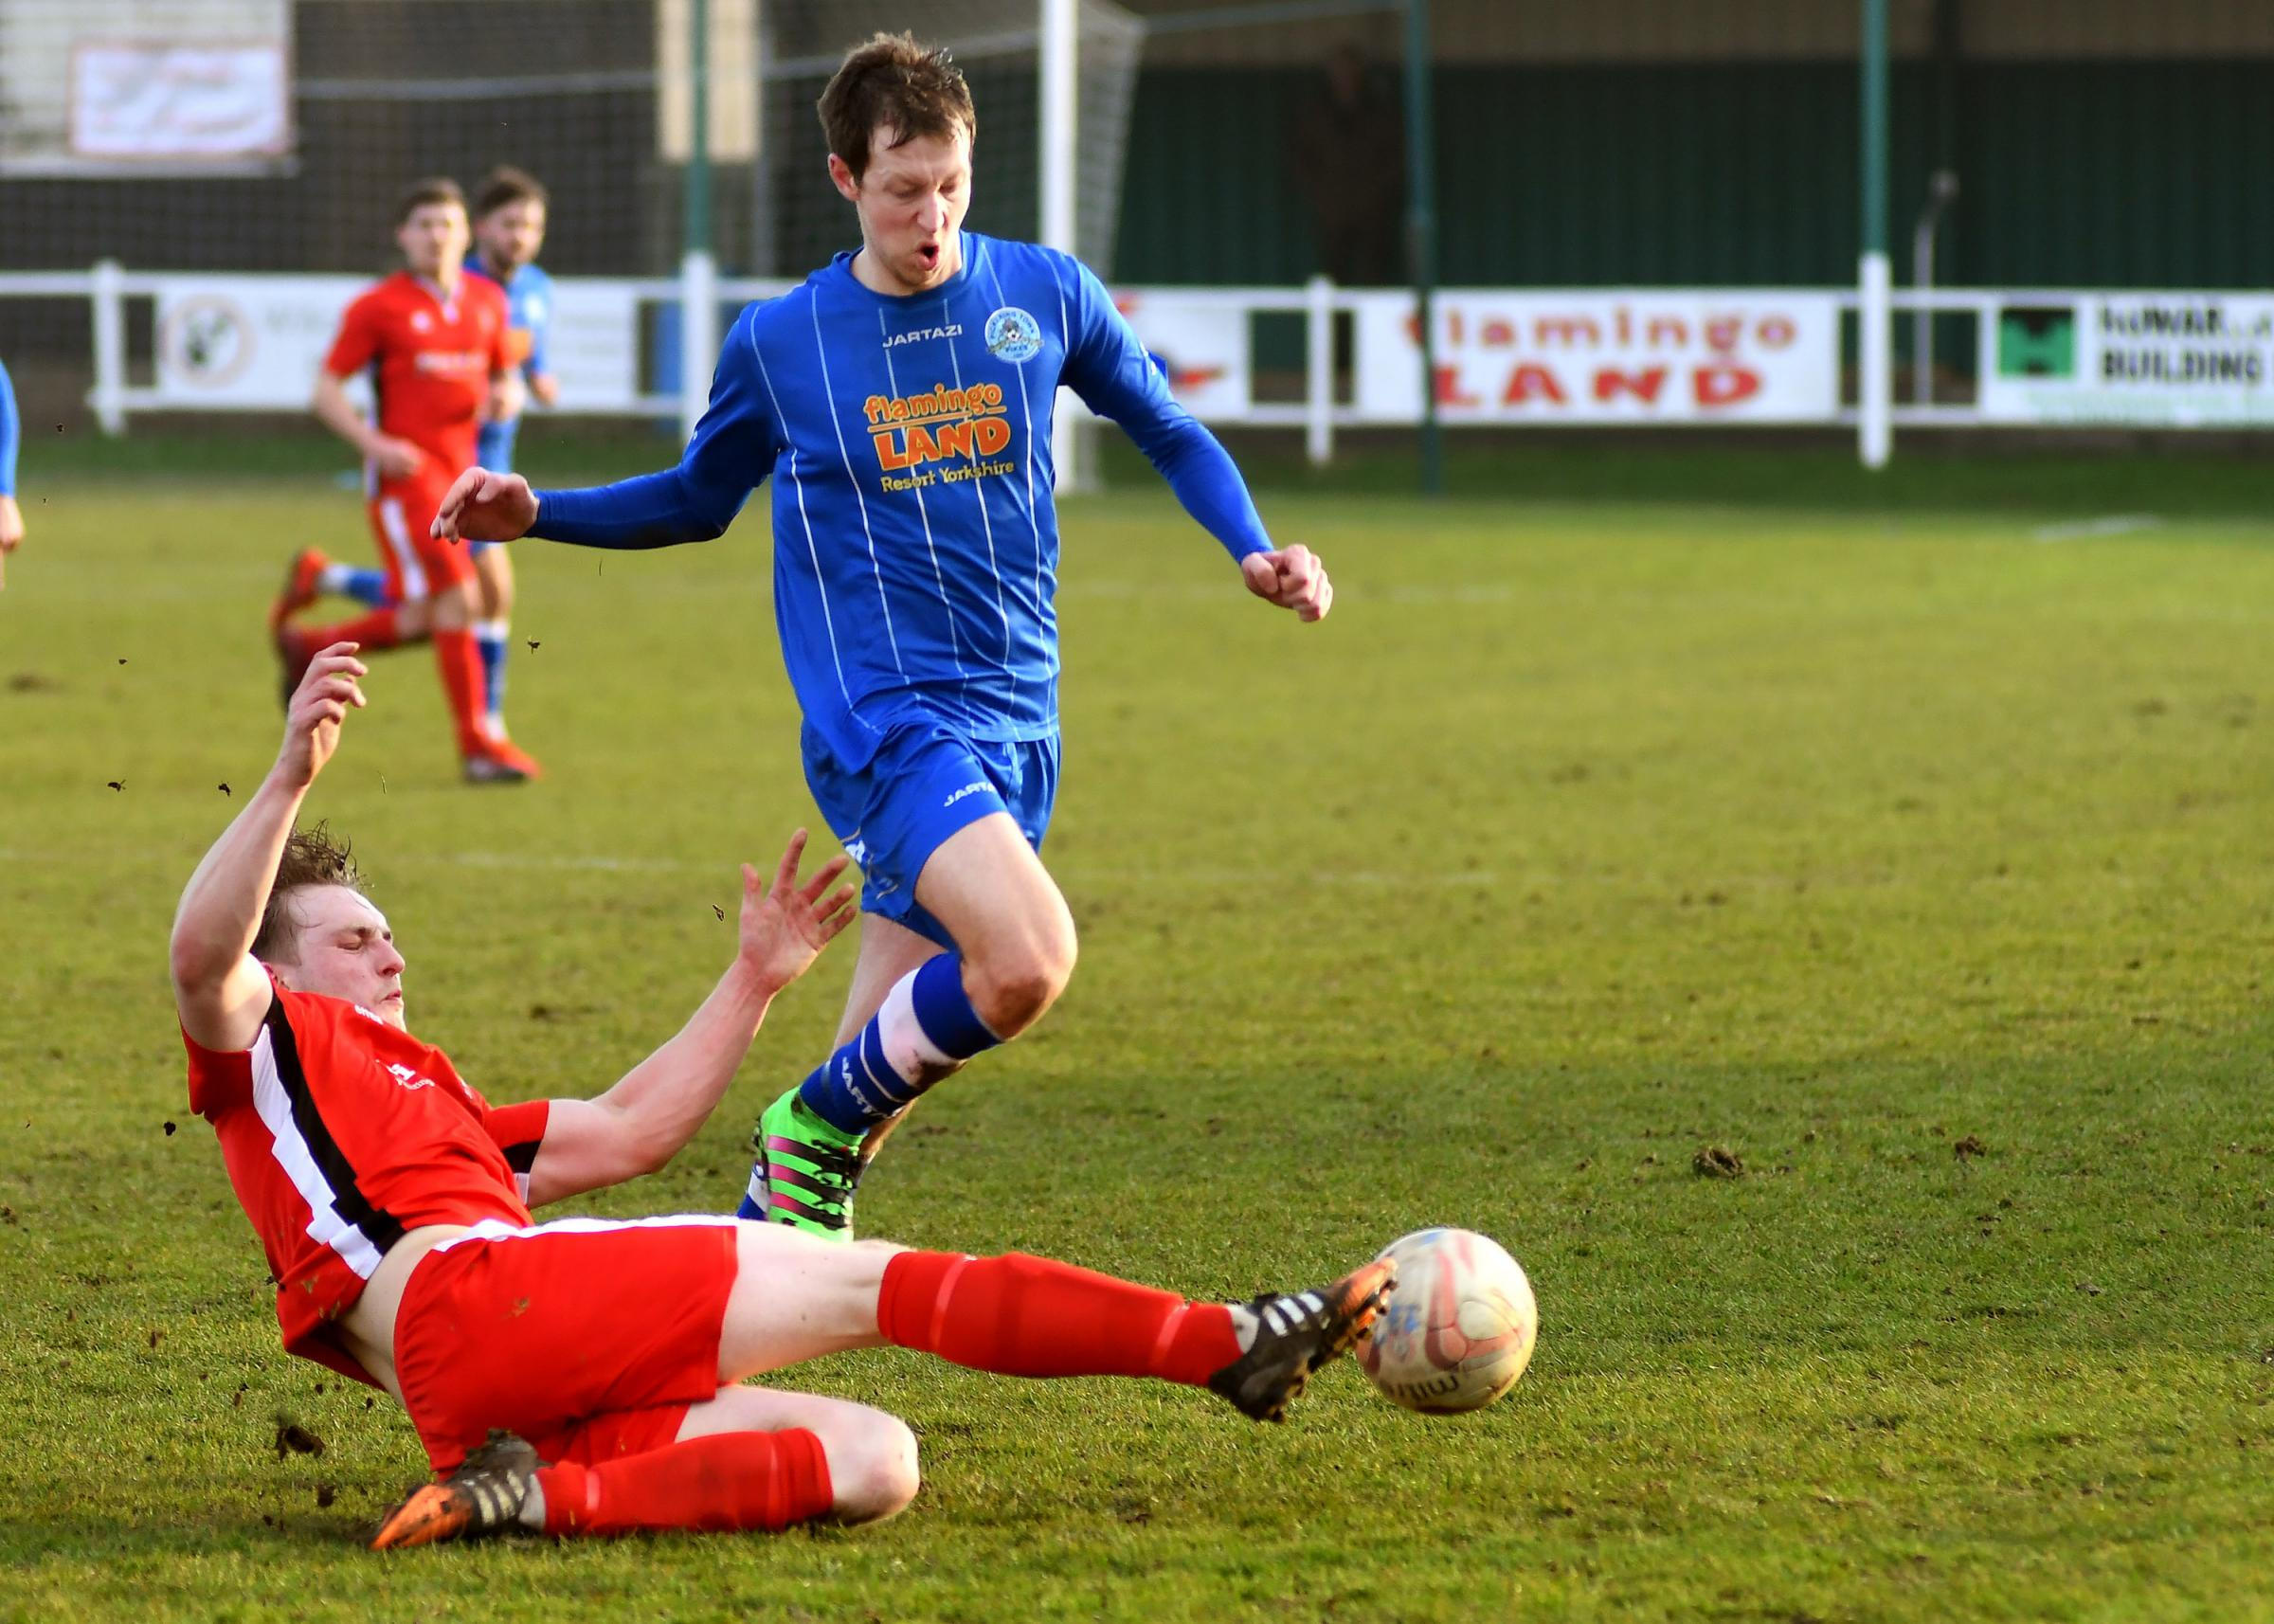 Former Pickering Town forward Joe Dale, who hit four goals in Selby Town's 5-0 Northern Counties East League division one win at Rossington Main